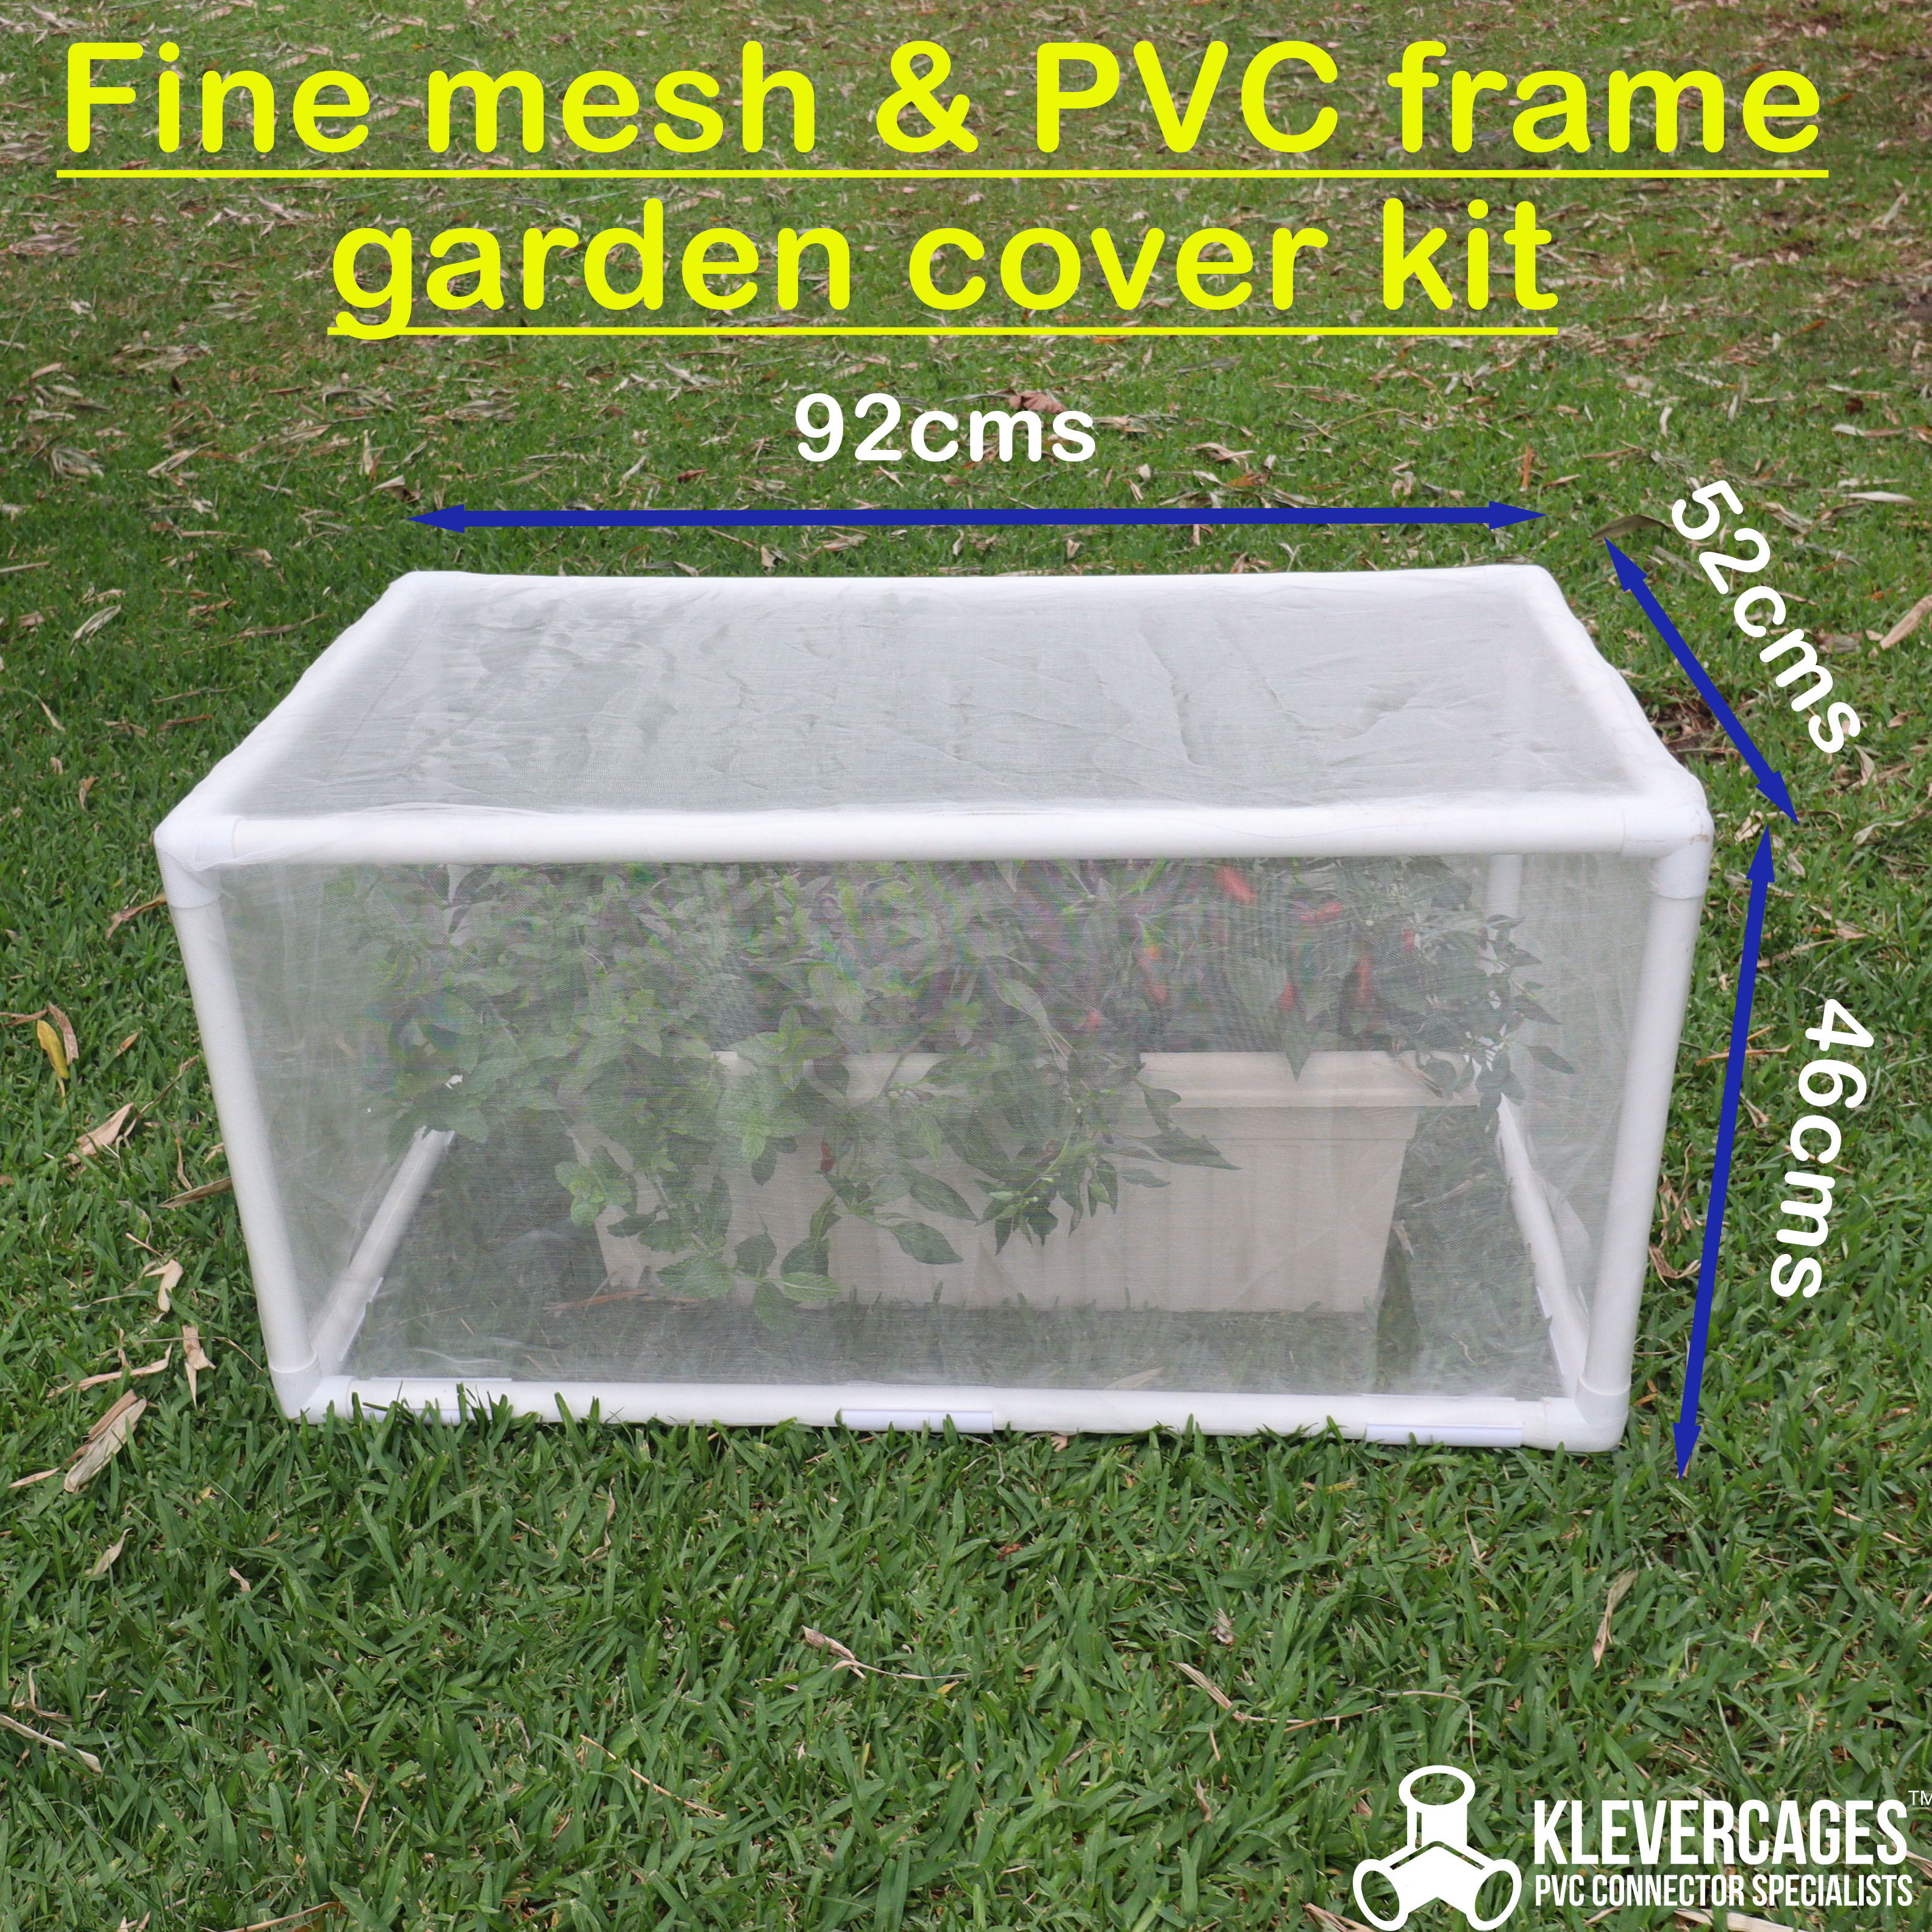 Fine mesh white garden cover for herbs and veggies with a PVC pipe and connector frame attached with snap Clamps